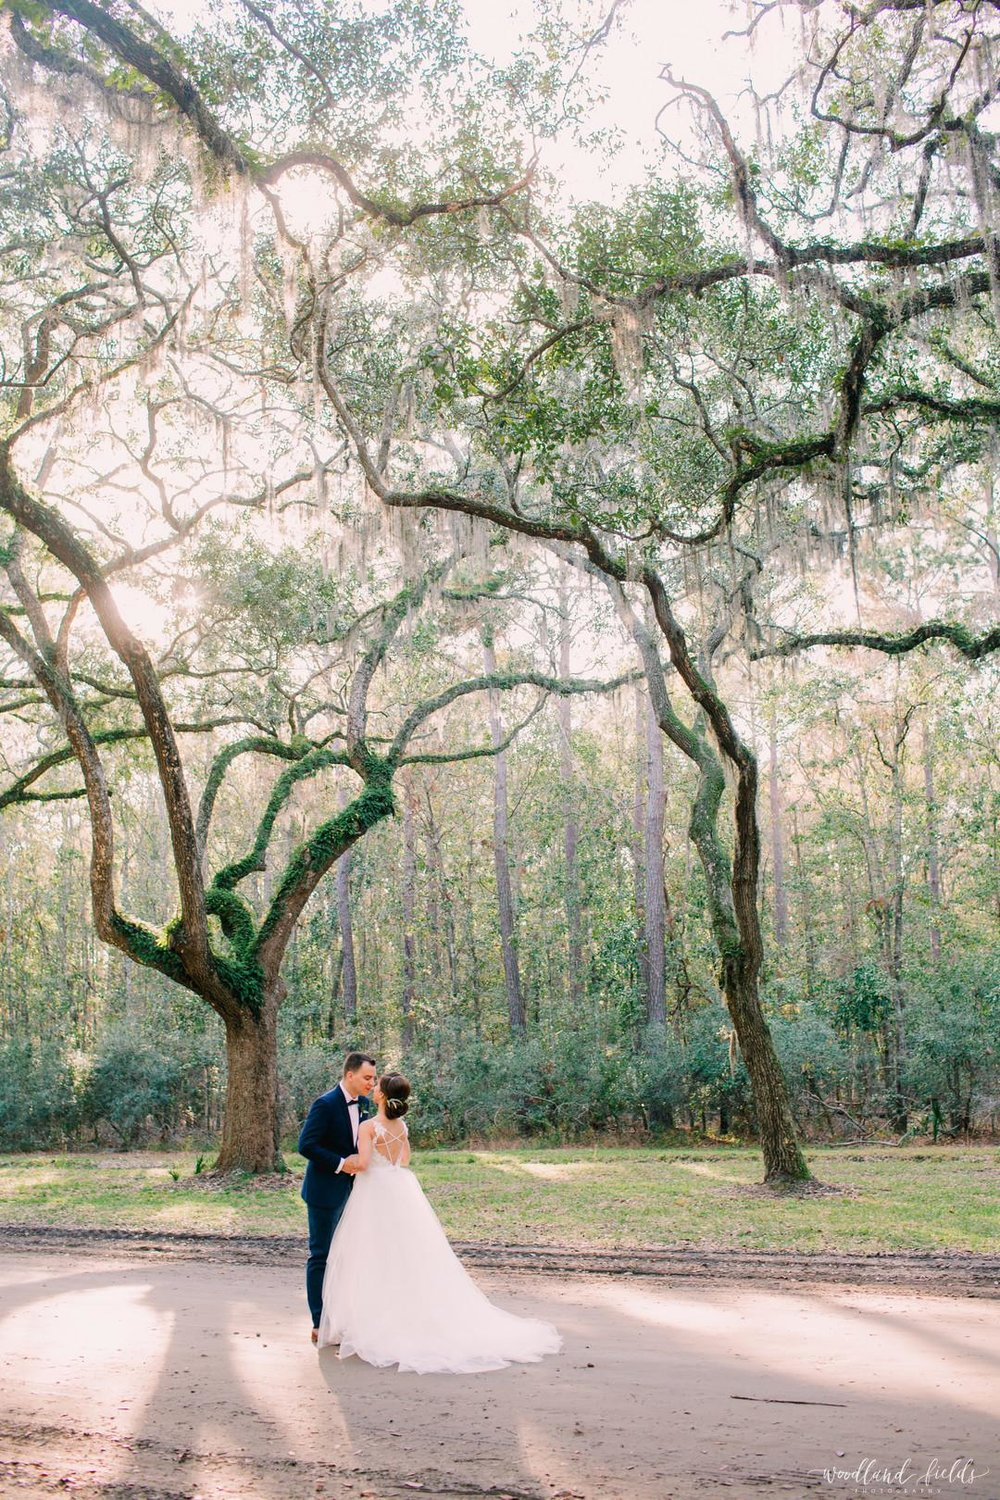 savannah-bridal-shop-ivory-and-beau-bridal-boutique-beth-and-jesse-woodland-fields-photography-georgia-railroad-museum-wedding-2.jpg